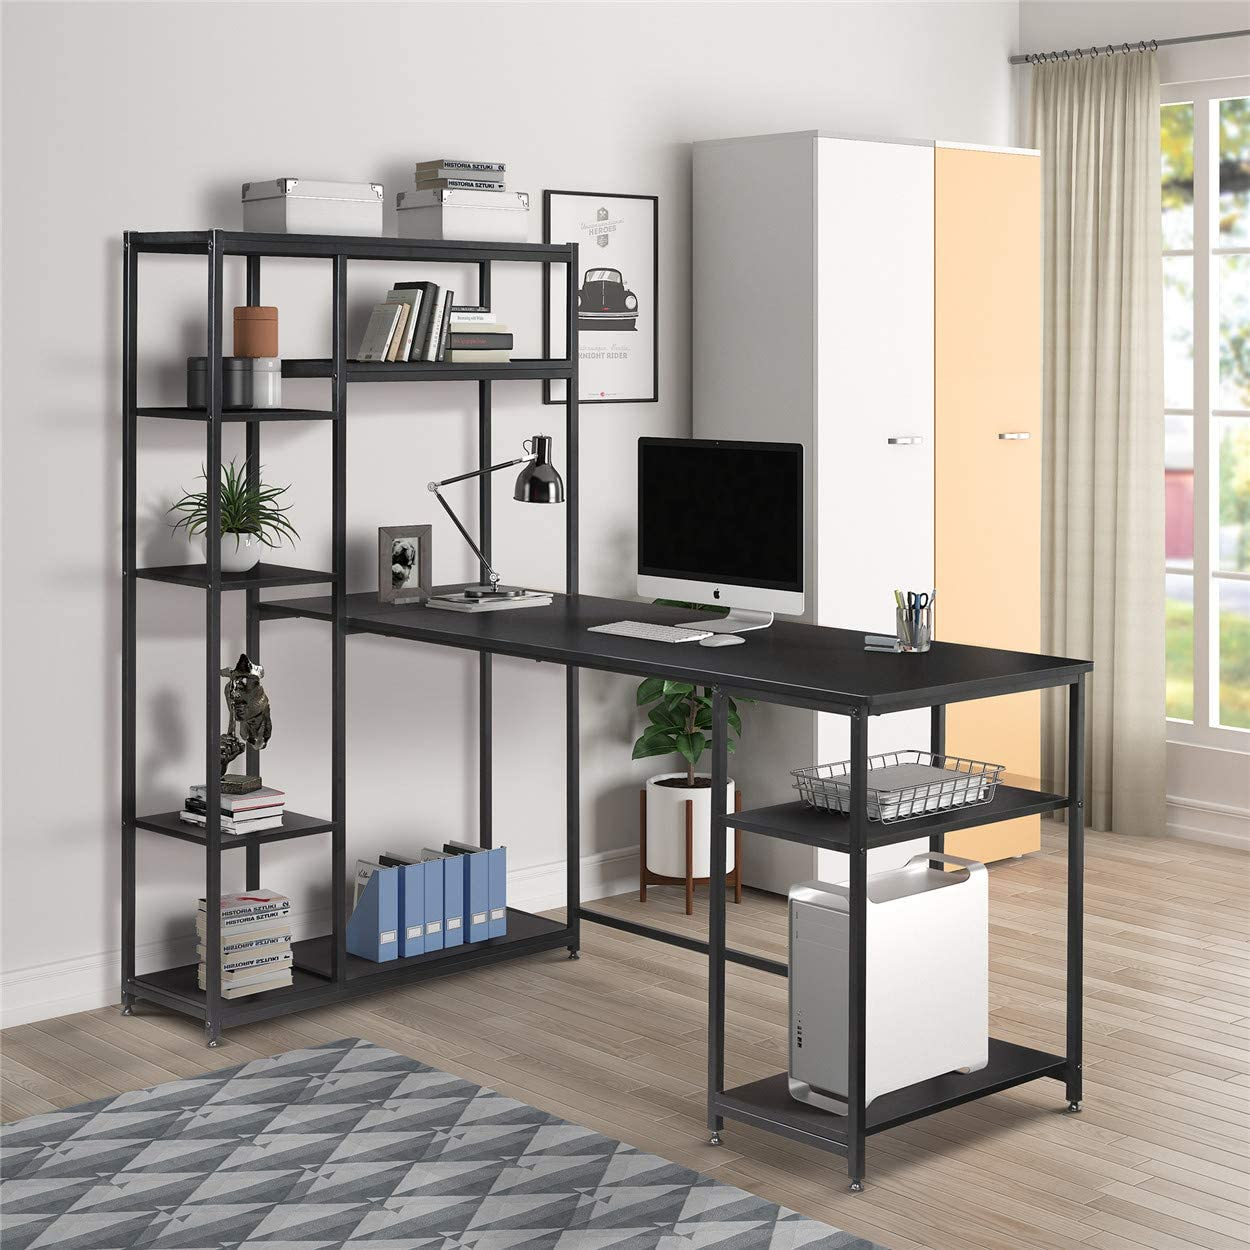 Office Computer Desk with Multiple Storage Shelves, Home Office Writing Desk with Metal Frame and Storage Bookshelf Black